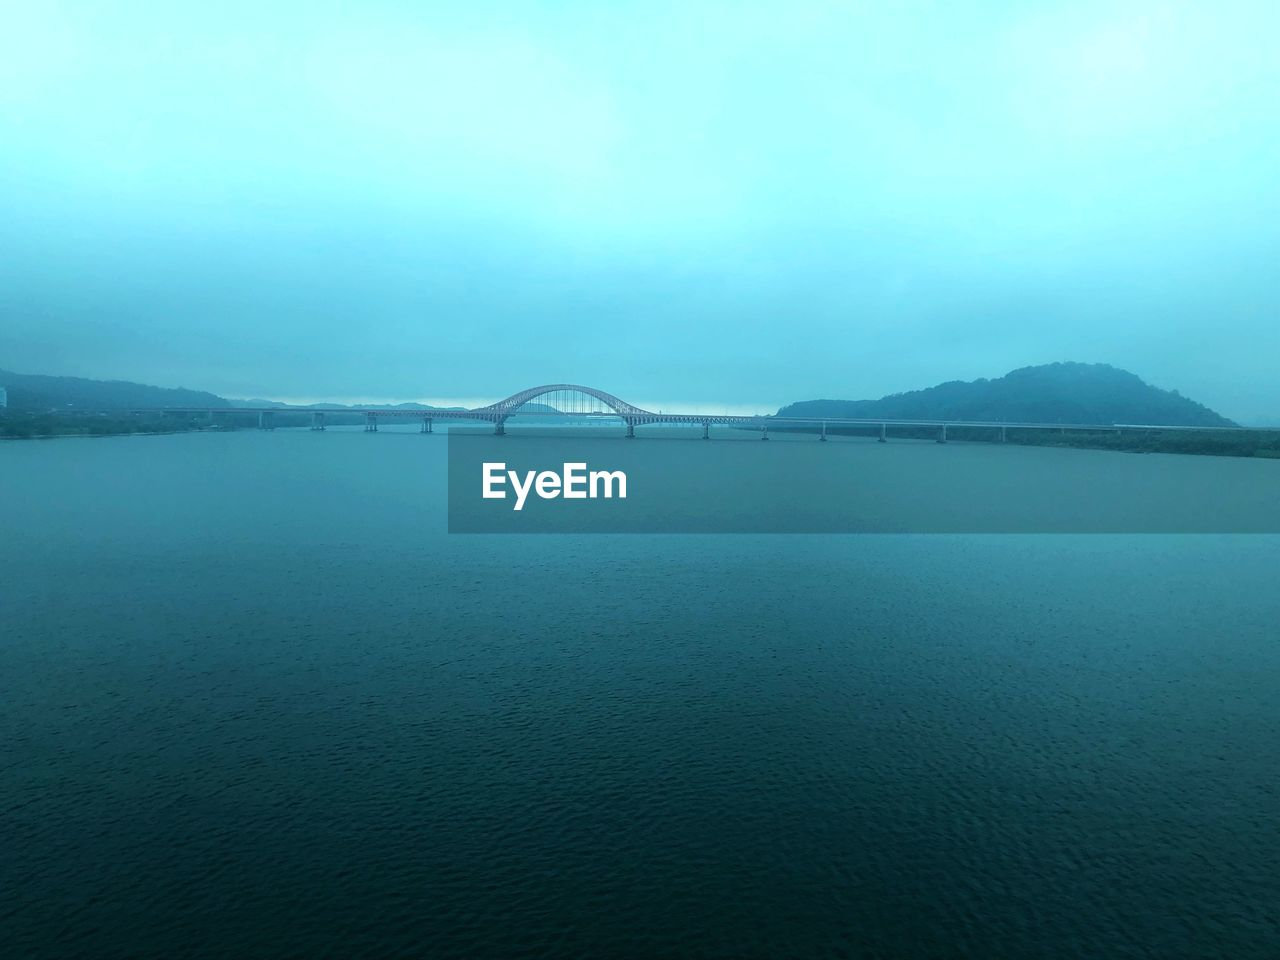 water, sea, scenics - nature, beauty in nature, waterfront, tranquil scene, tranquility, sky, nature, no people, day, mountain, connection, bridge, outdoors, non-urban scene, bridge - man made structure, idyllic, fog